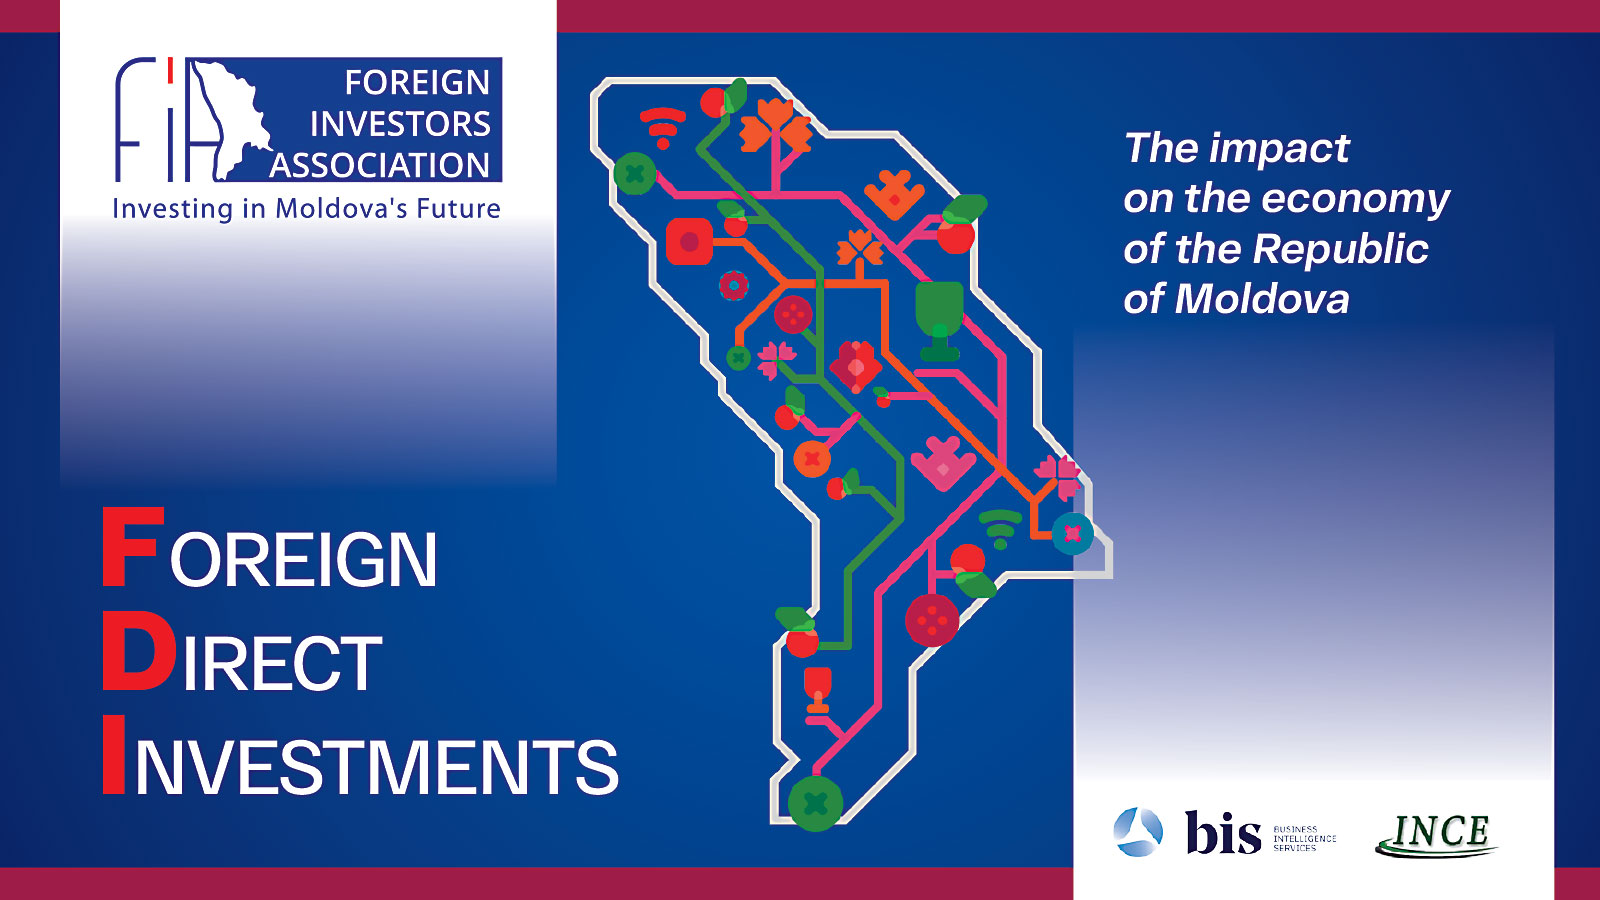 www.infotag.md: MOLDOVAN COMPANIES ARE WEAKLY INTEGRATED IN SUPPLY OF ENTERPRISES WITH FOREIGN CAPITAL – RESEARCH RESULTS